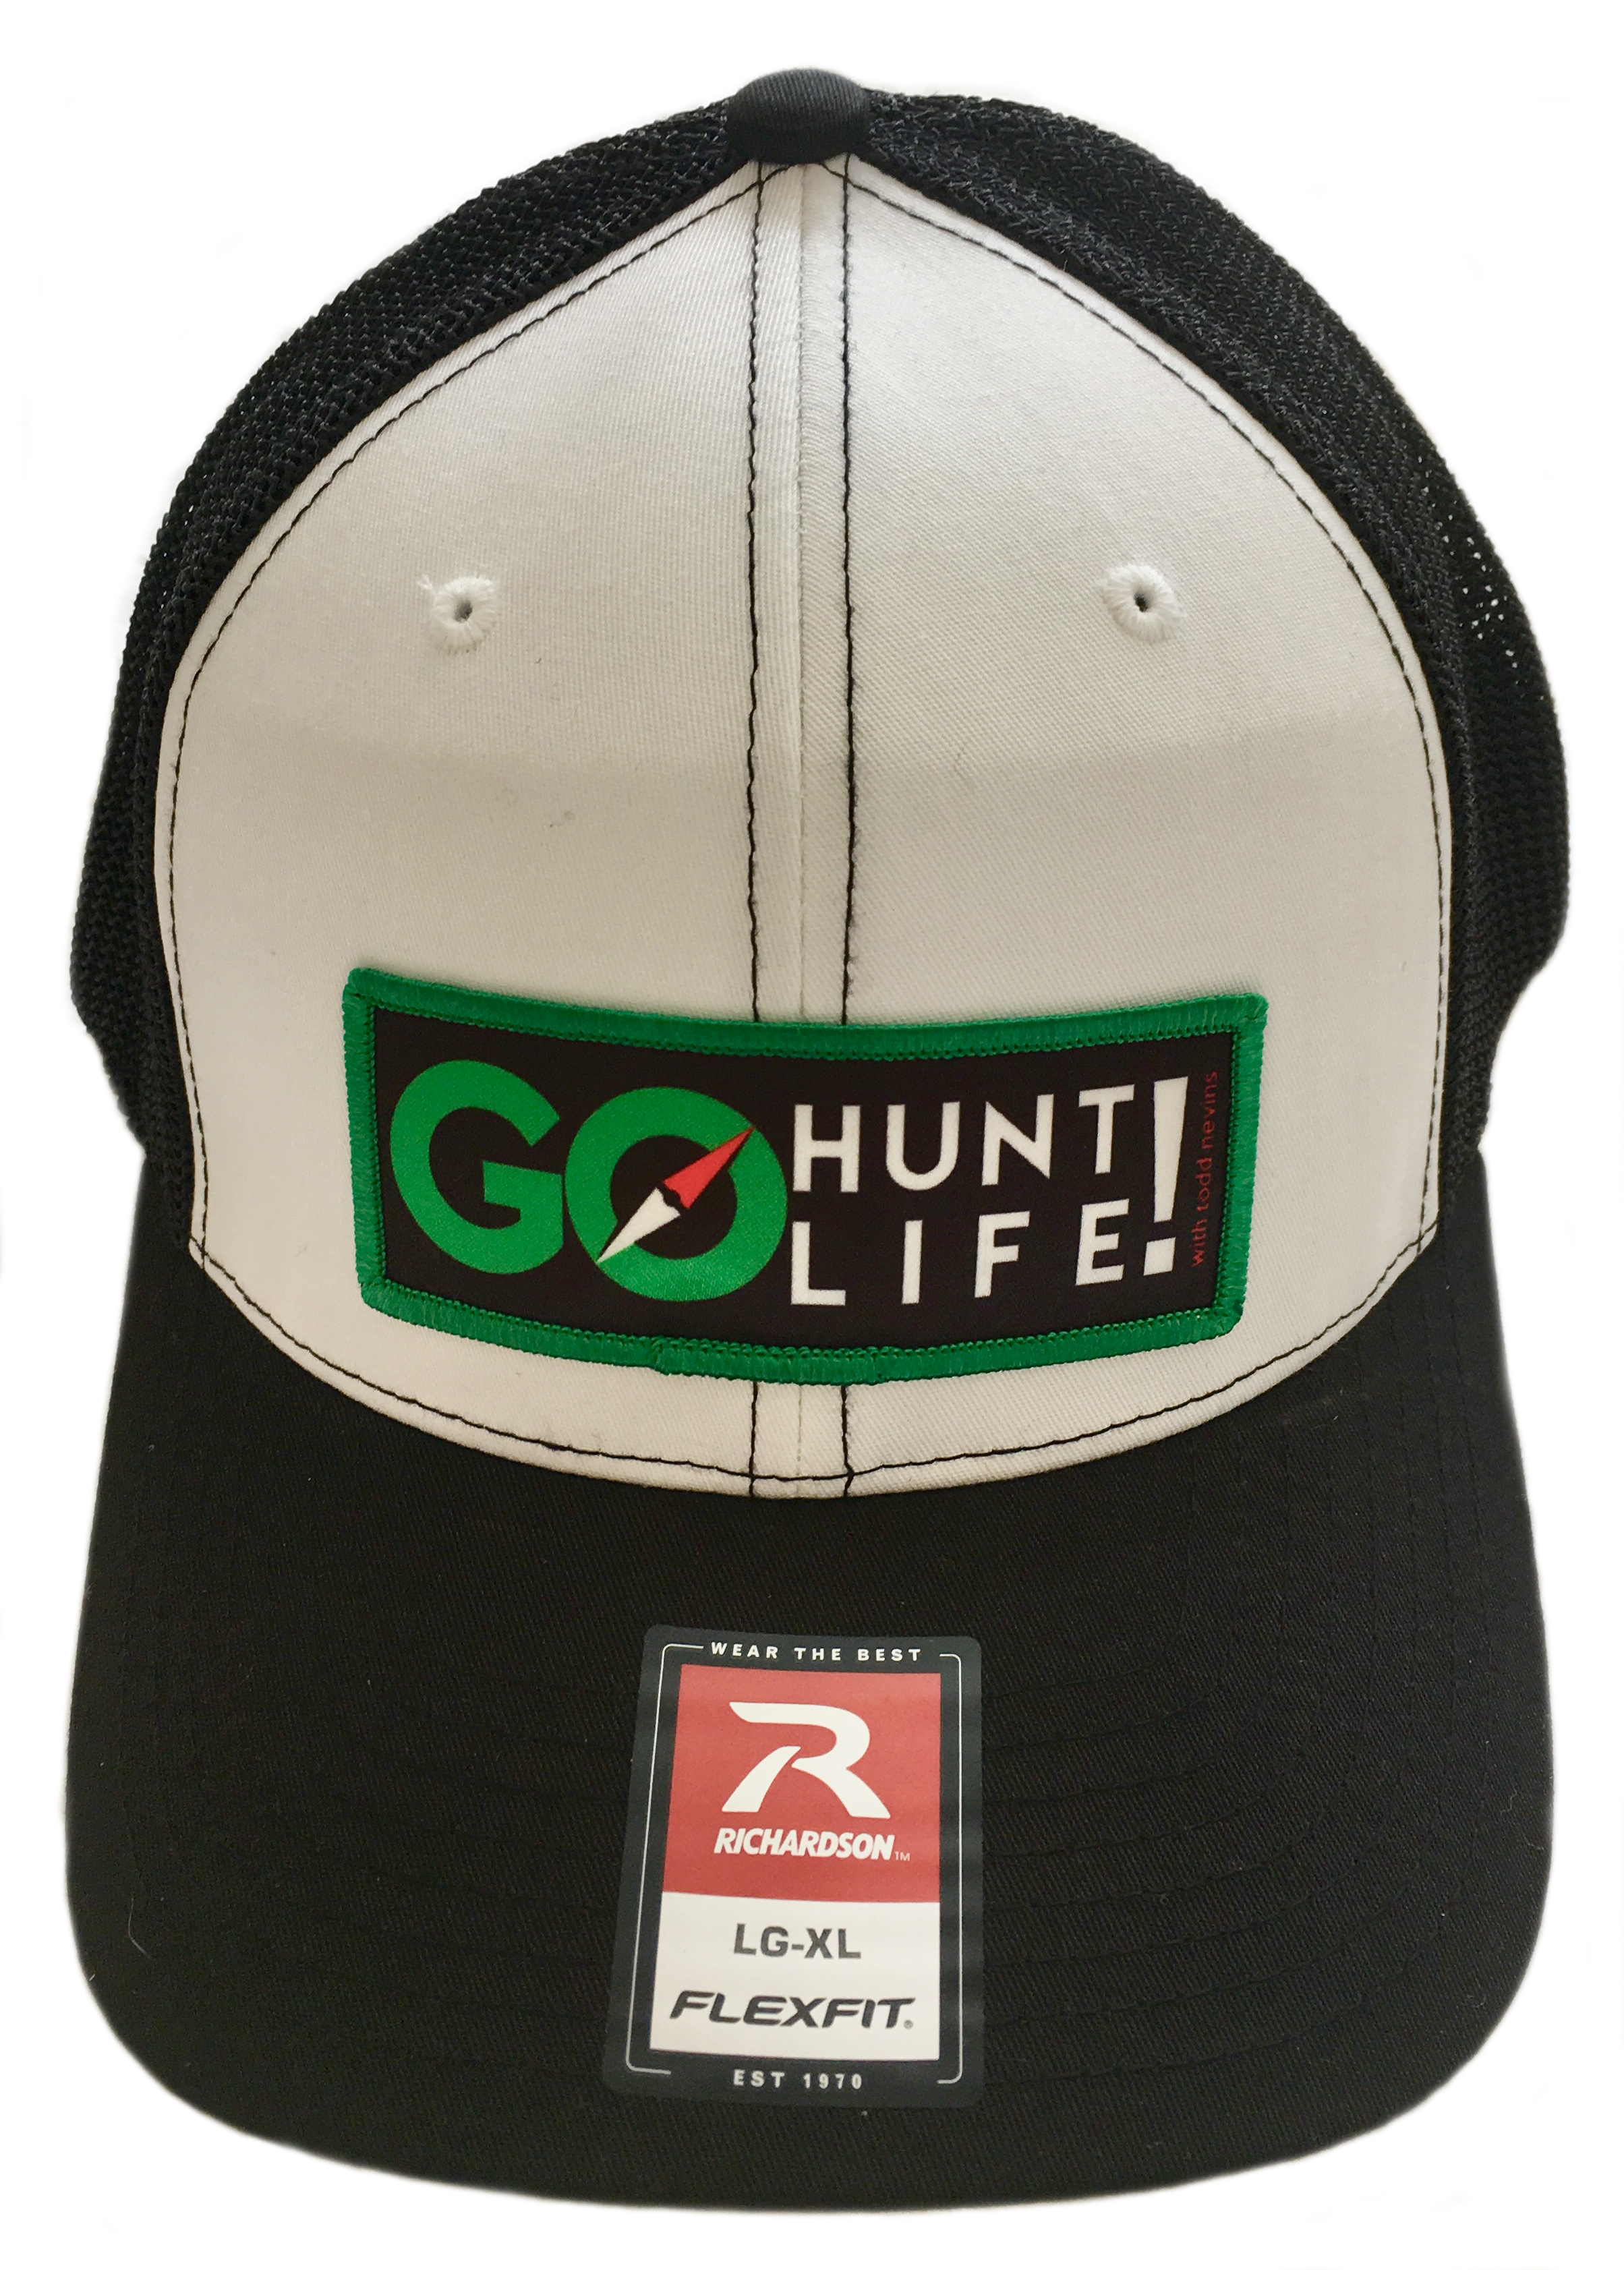 Go Hunt Life trucker hat.